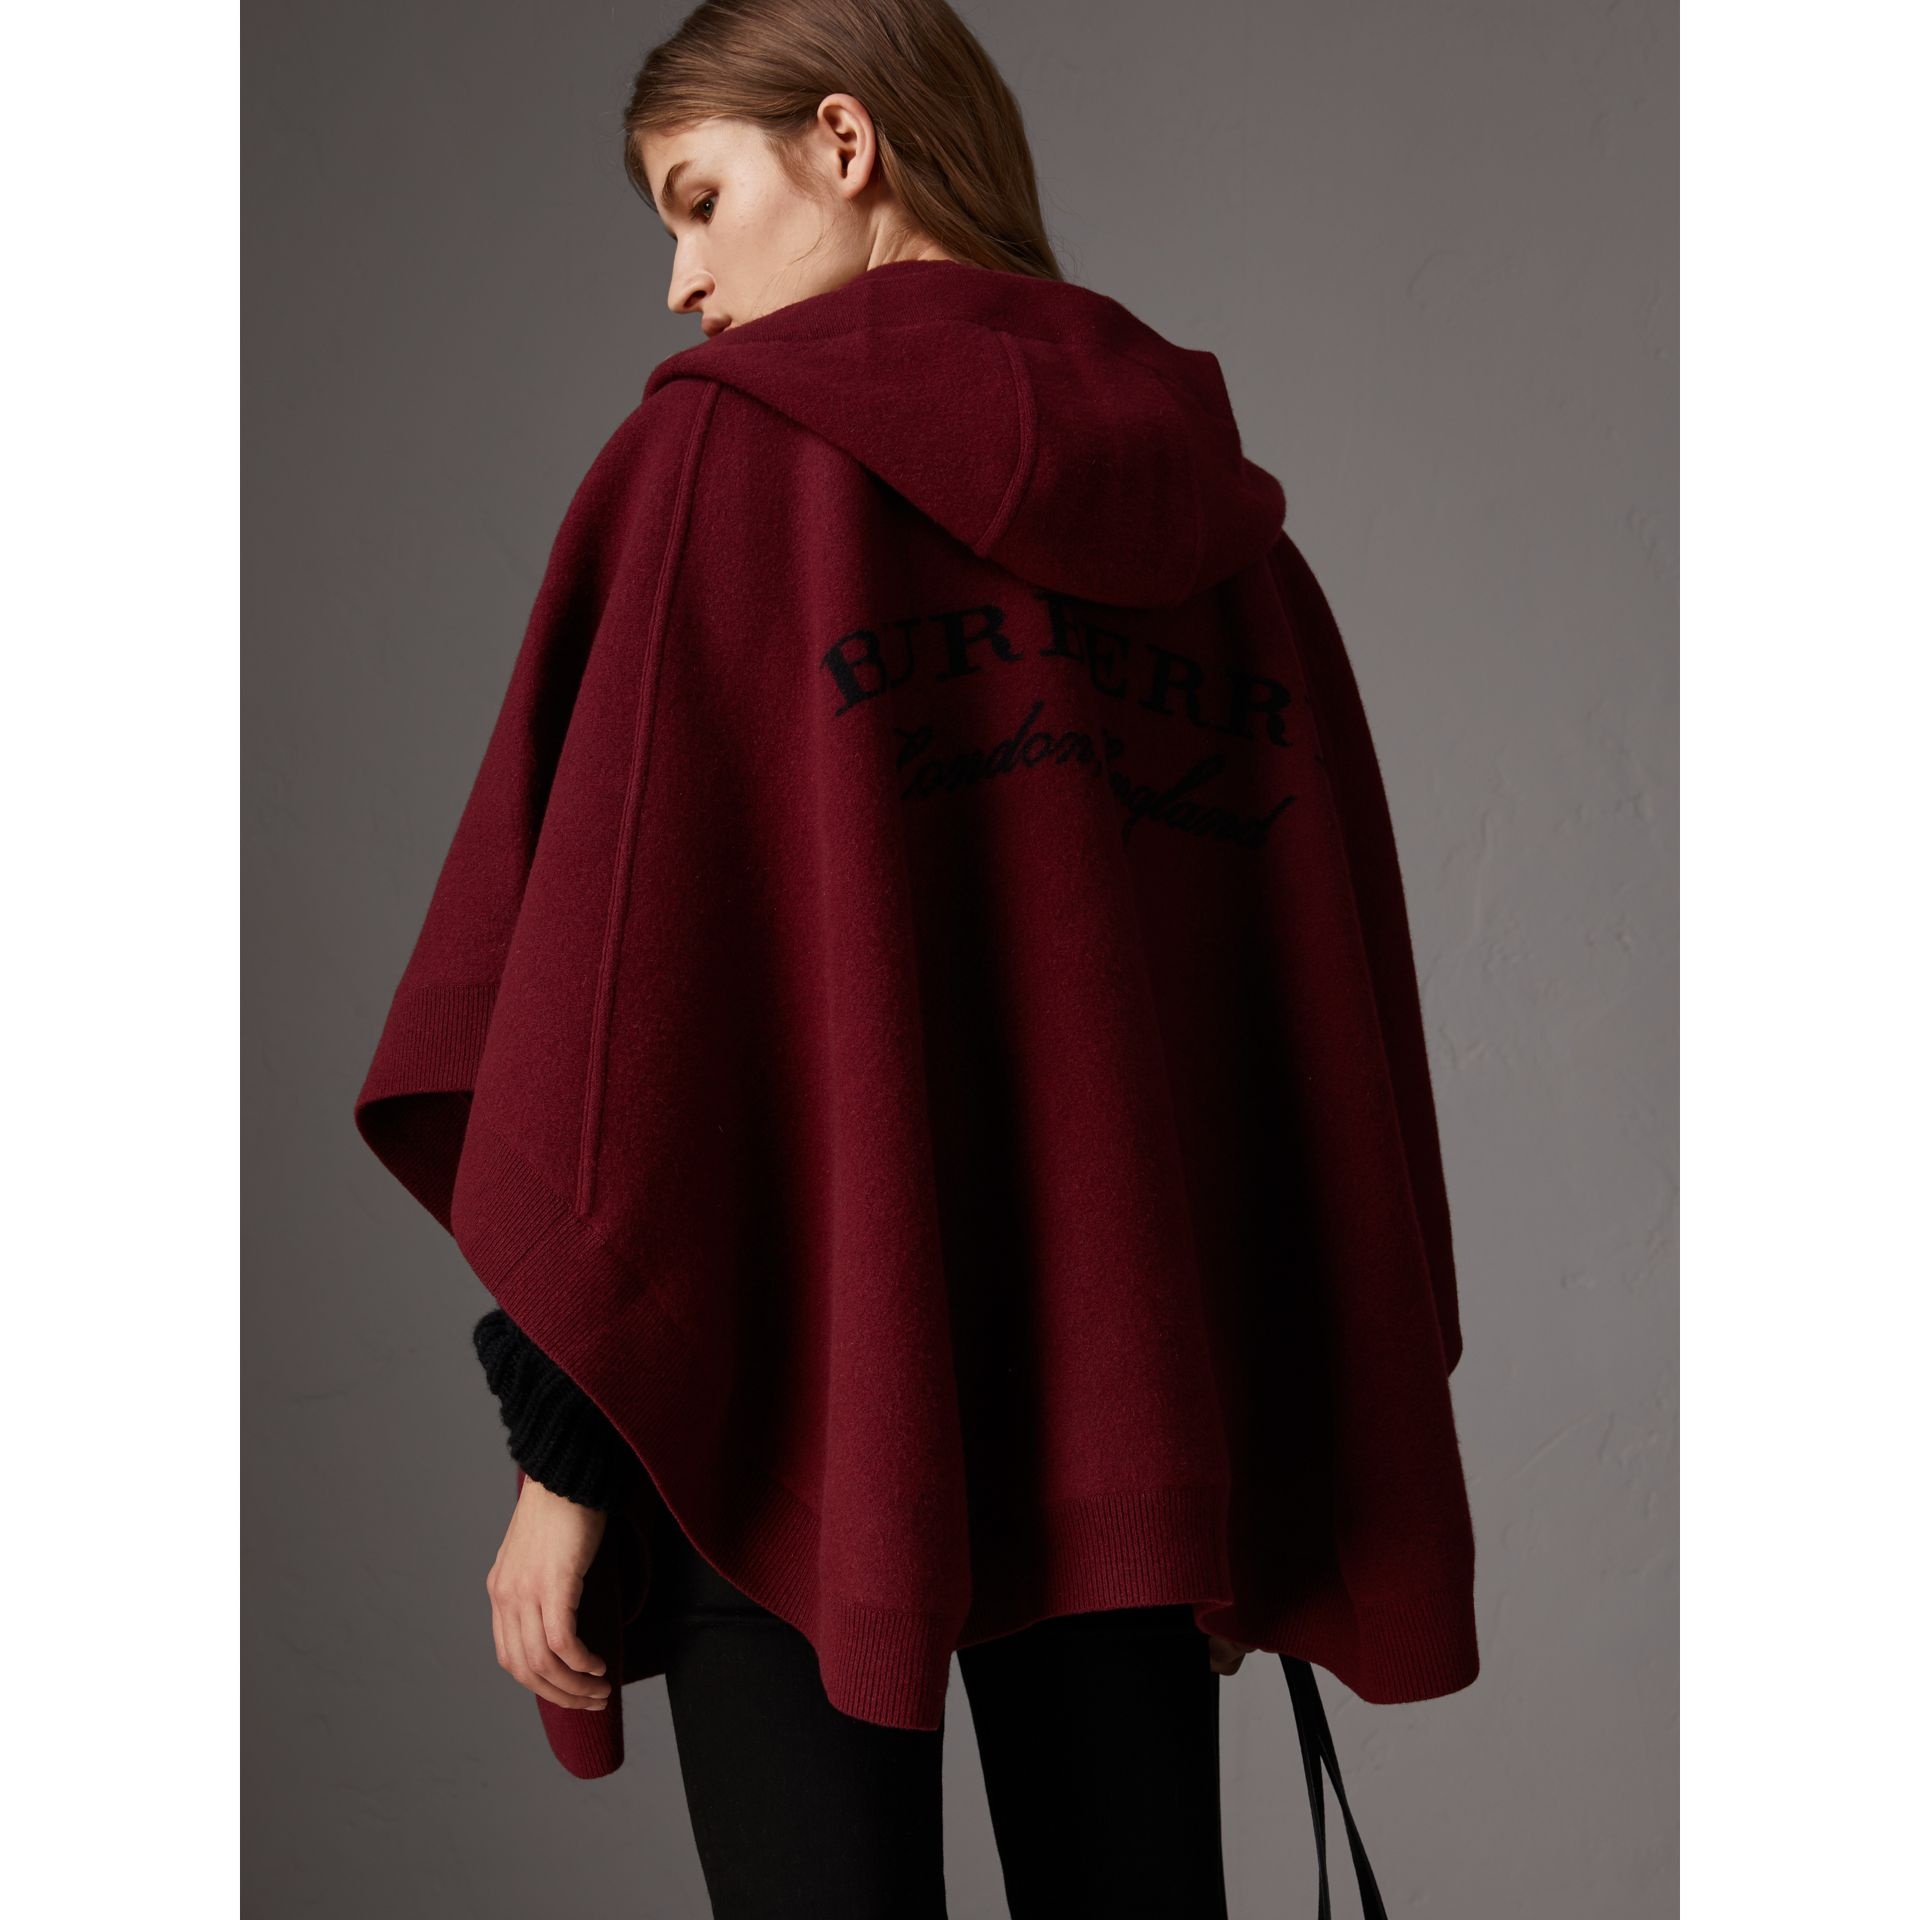 Wool Cashmere Blend Hooded Poncho in Deep Red - Women | Burberry Singapore - gallery image 2